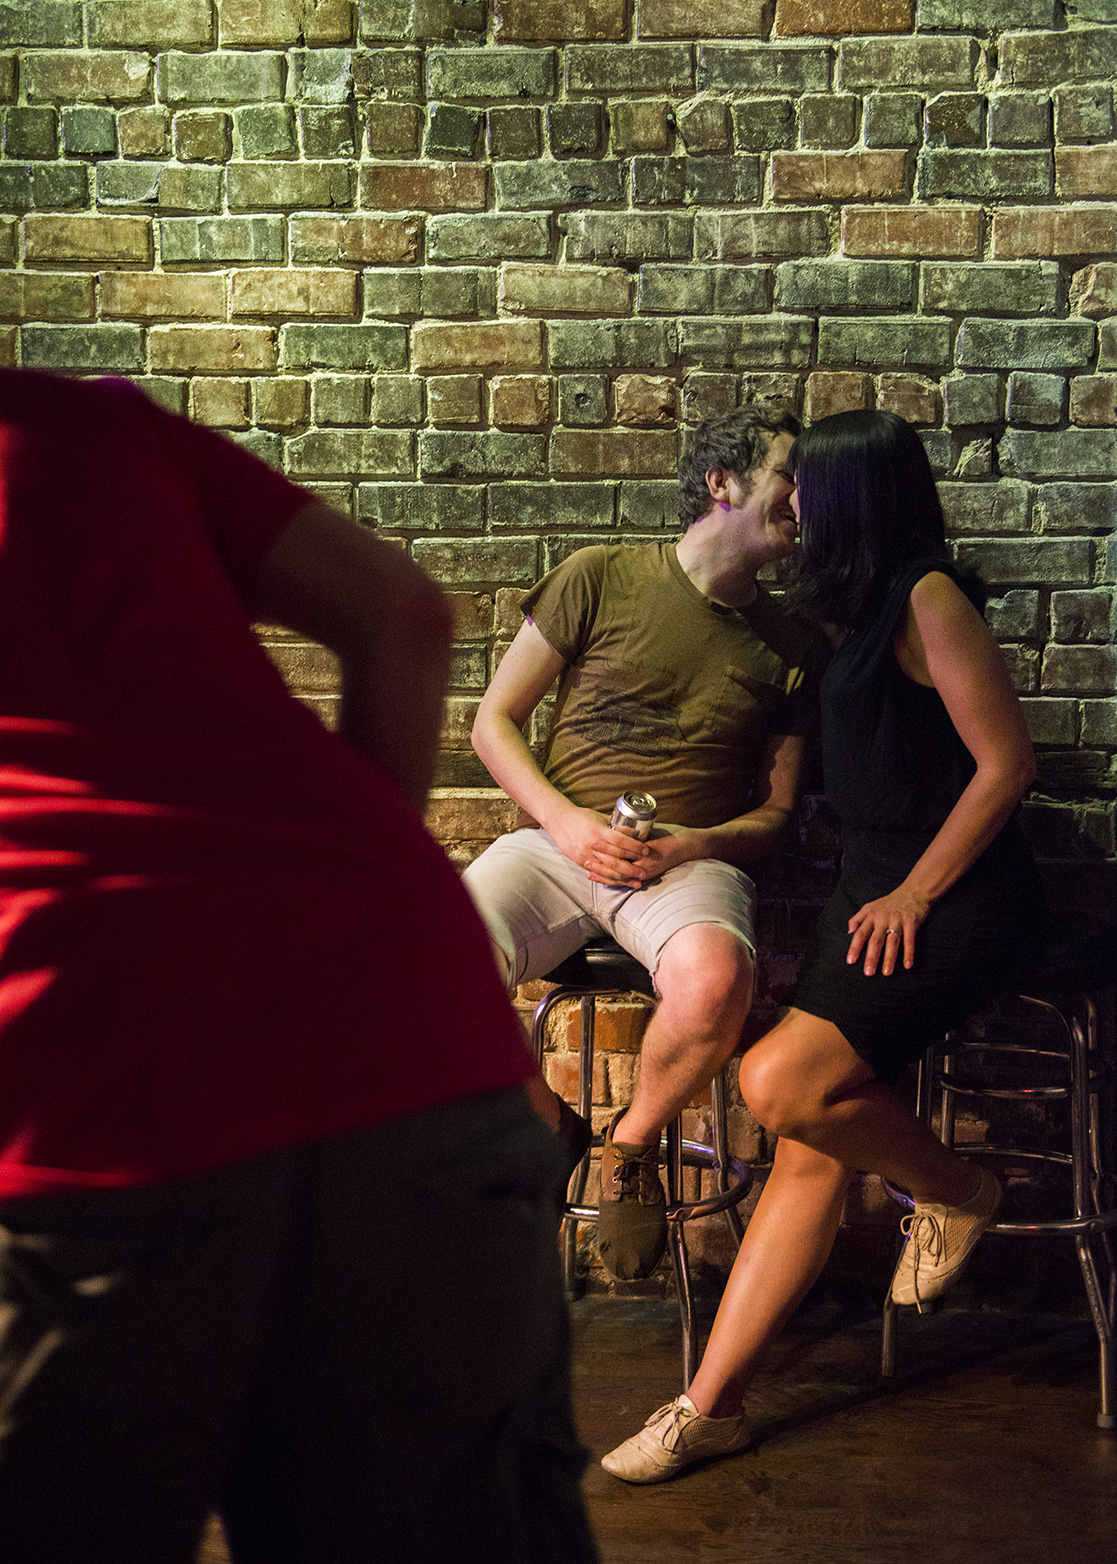 Will Klatt and Marla Davis share a moment at The Union on Friday, August 29, 2014 in Athens, Ohio.